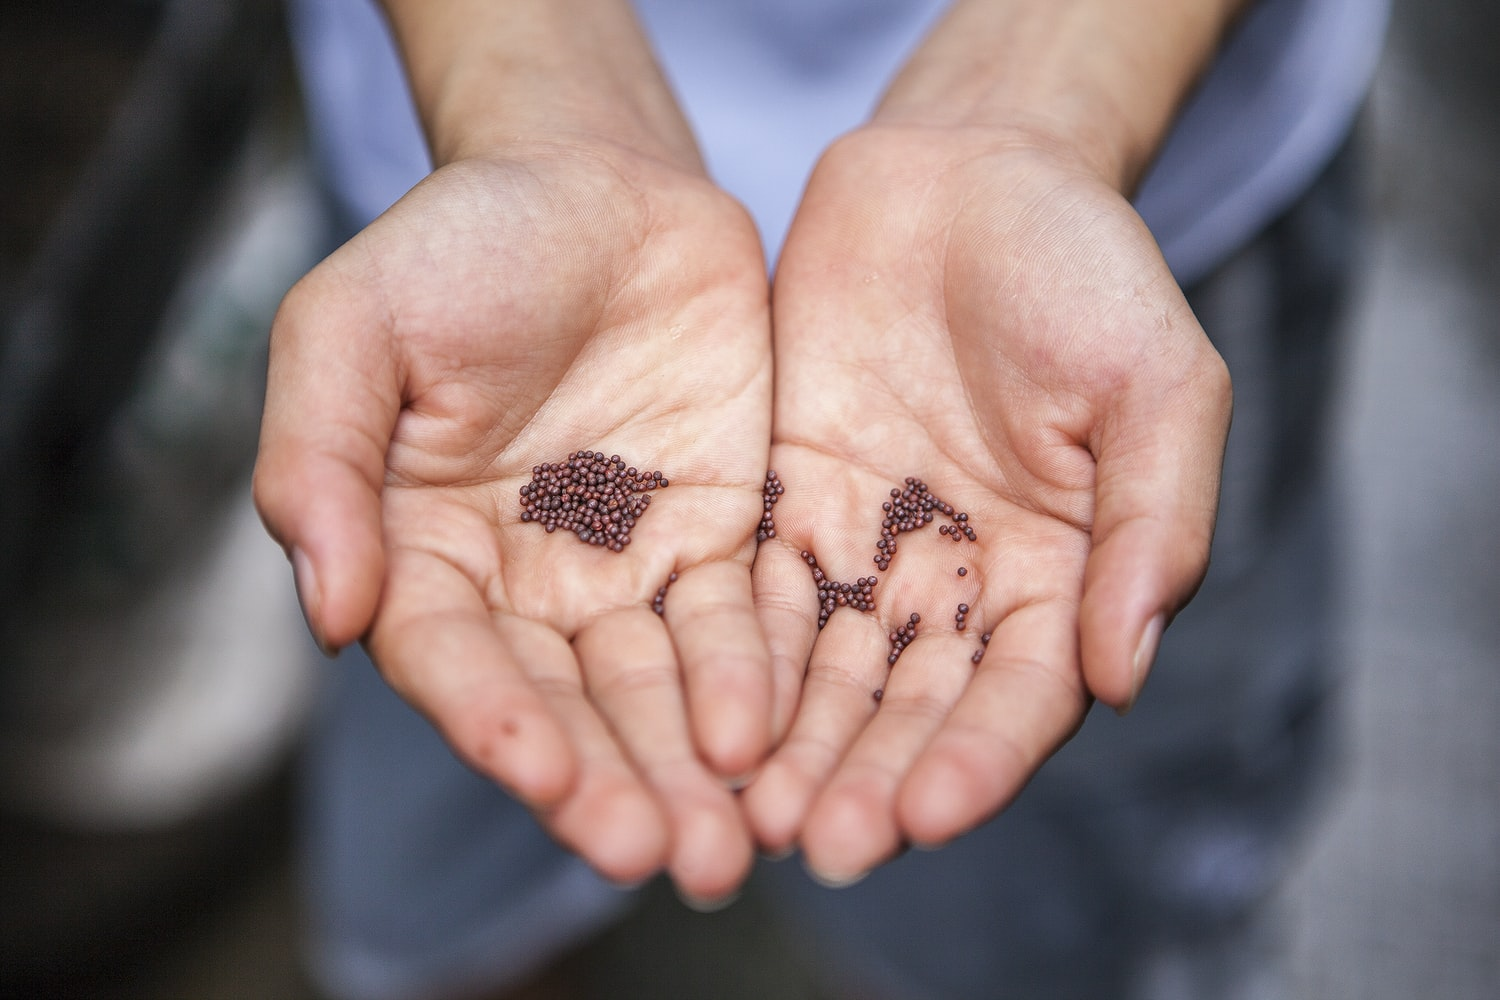 seeds in the palms